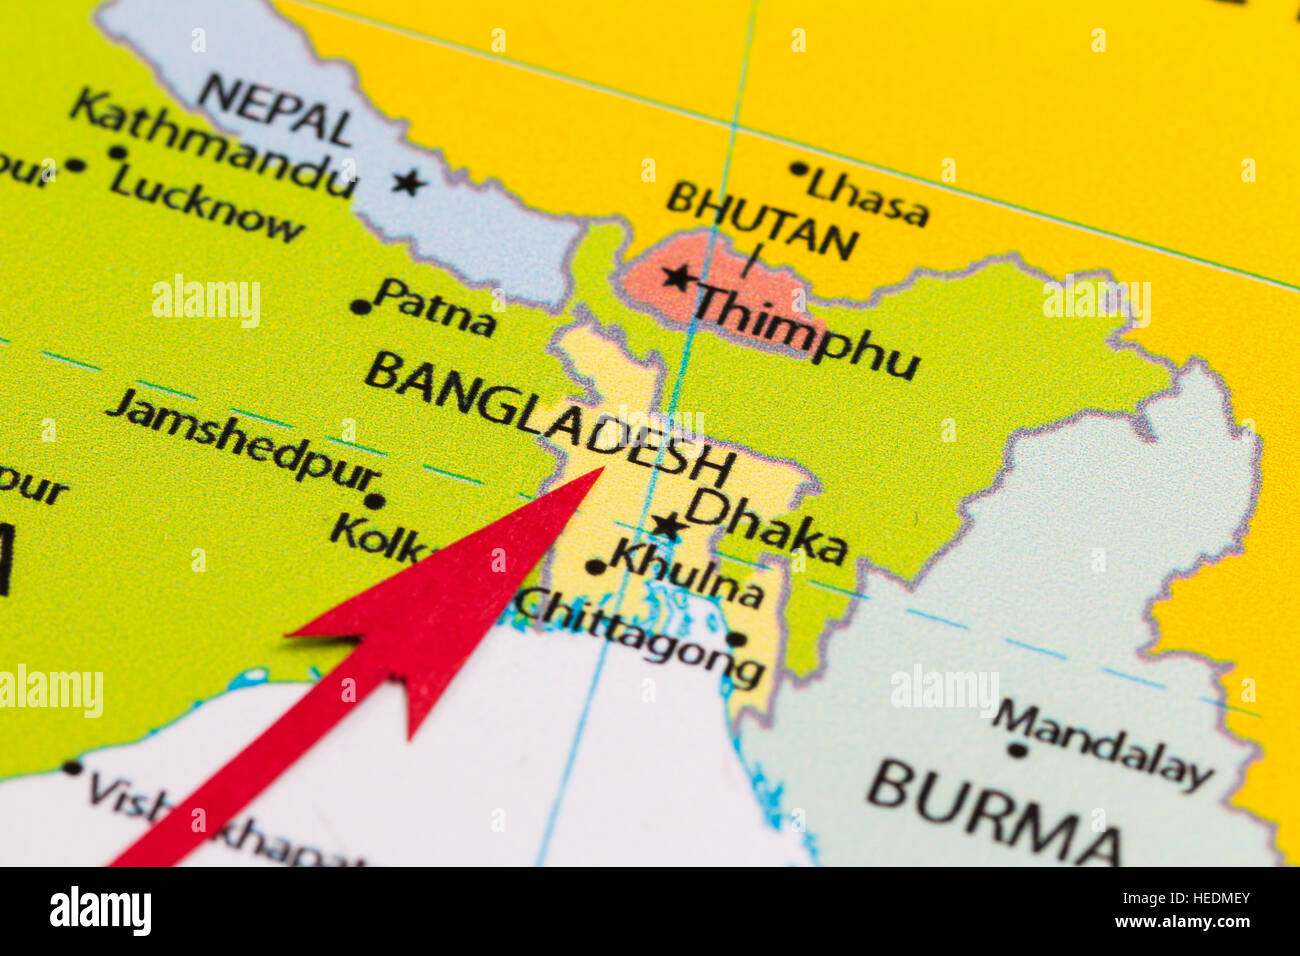 Bangladesh On Map Of Asia.Bangladesh Map Stock Photos Bangladesh Map Stock Images Alamy